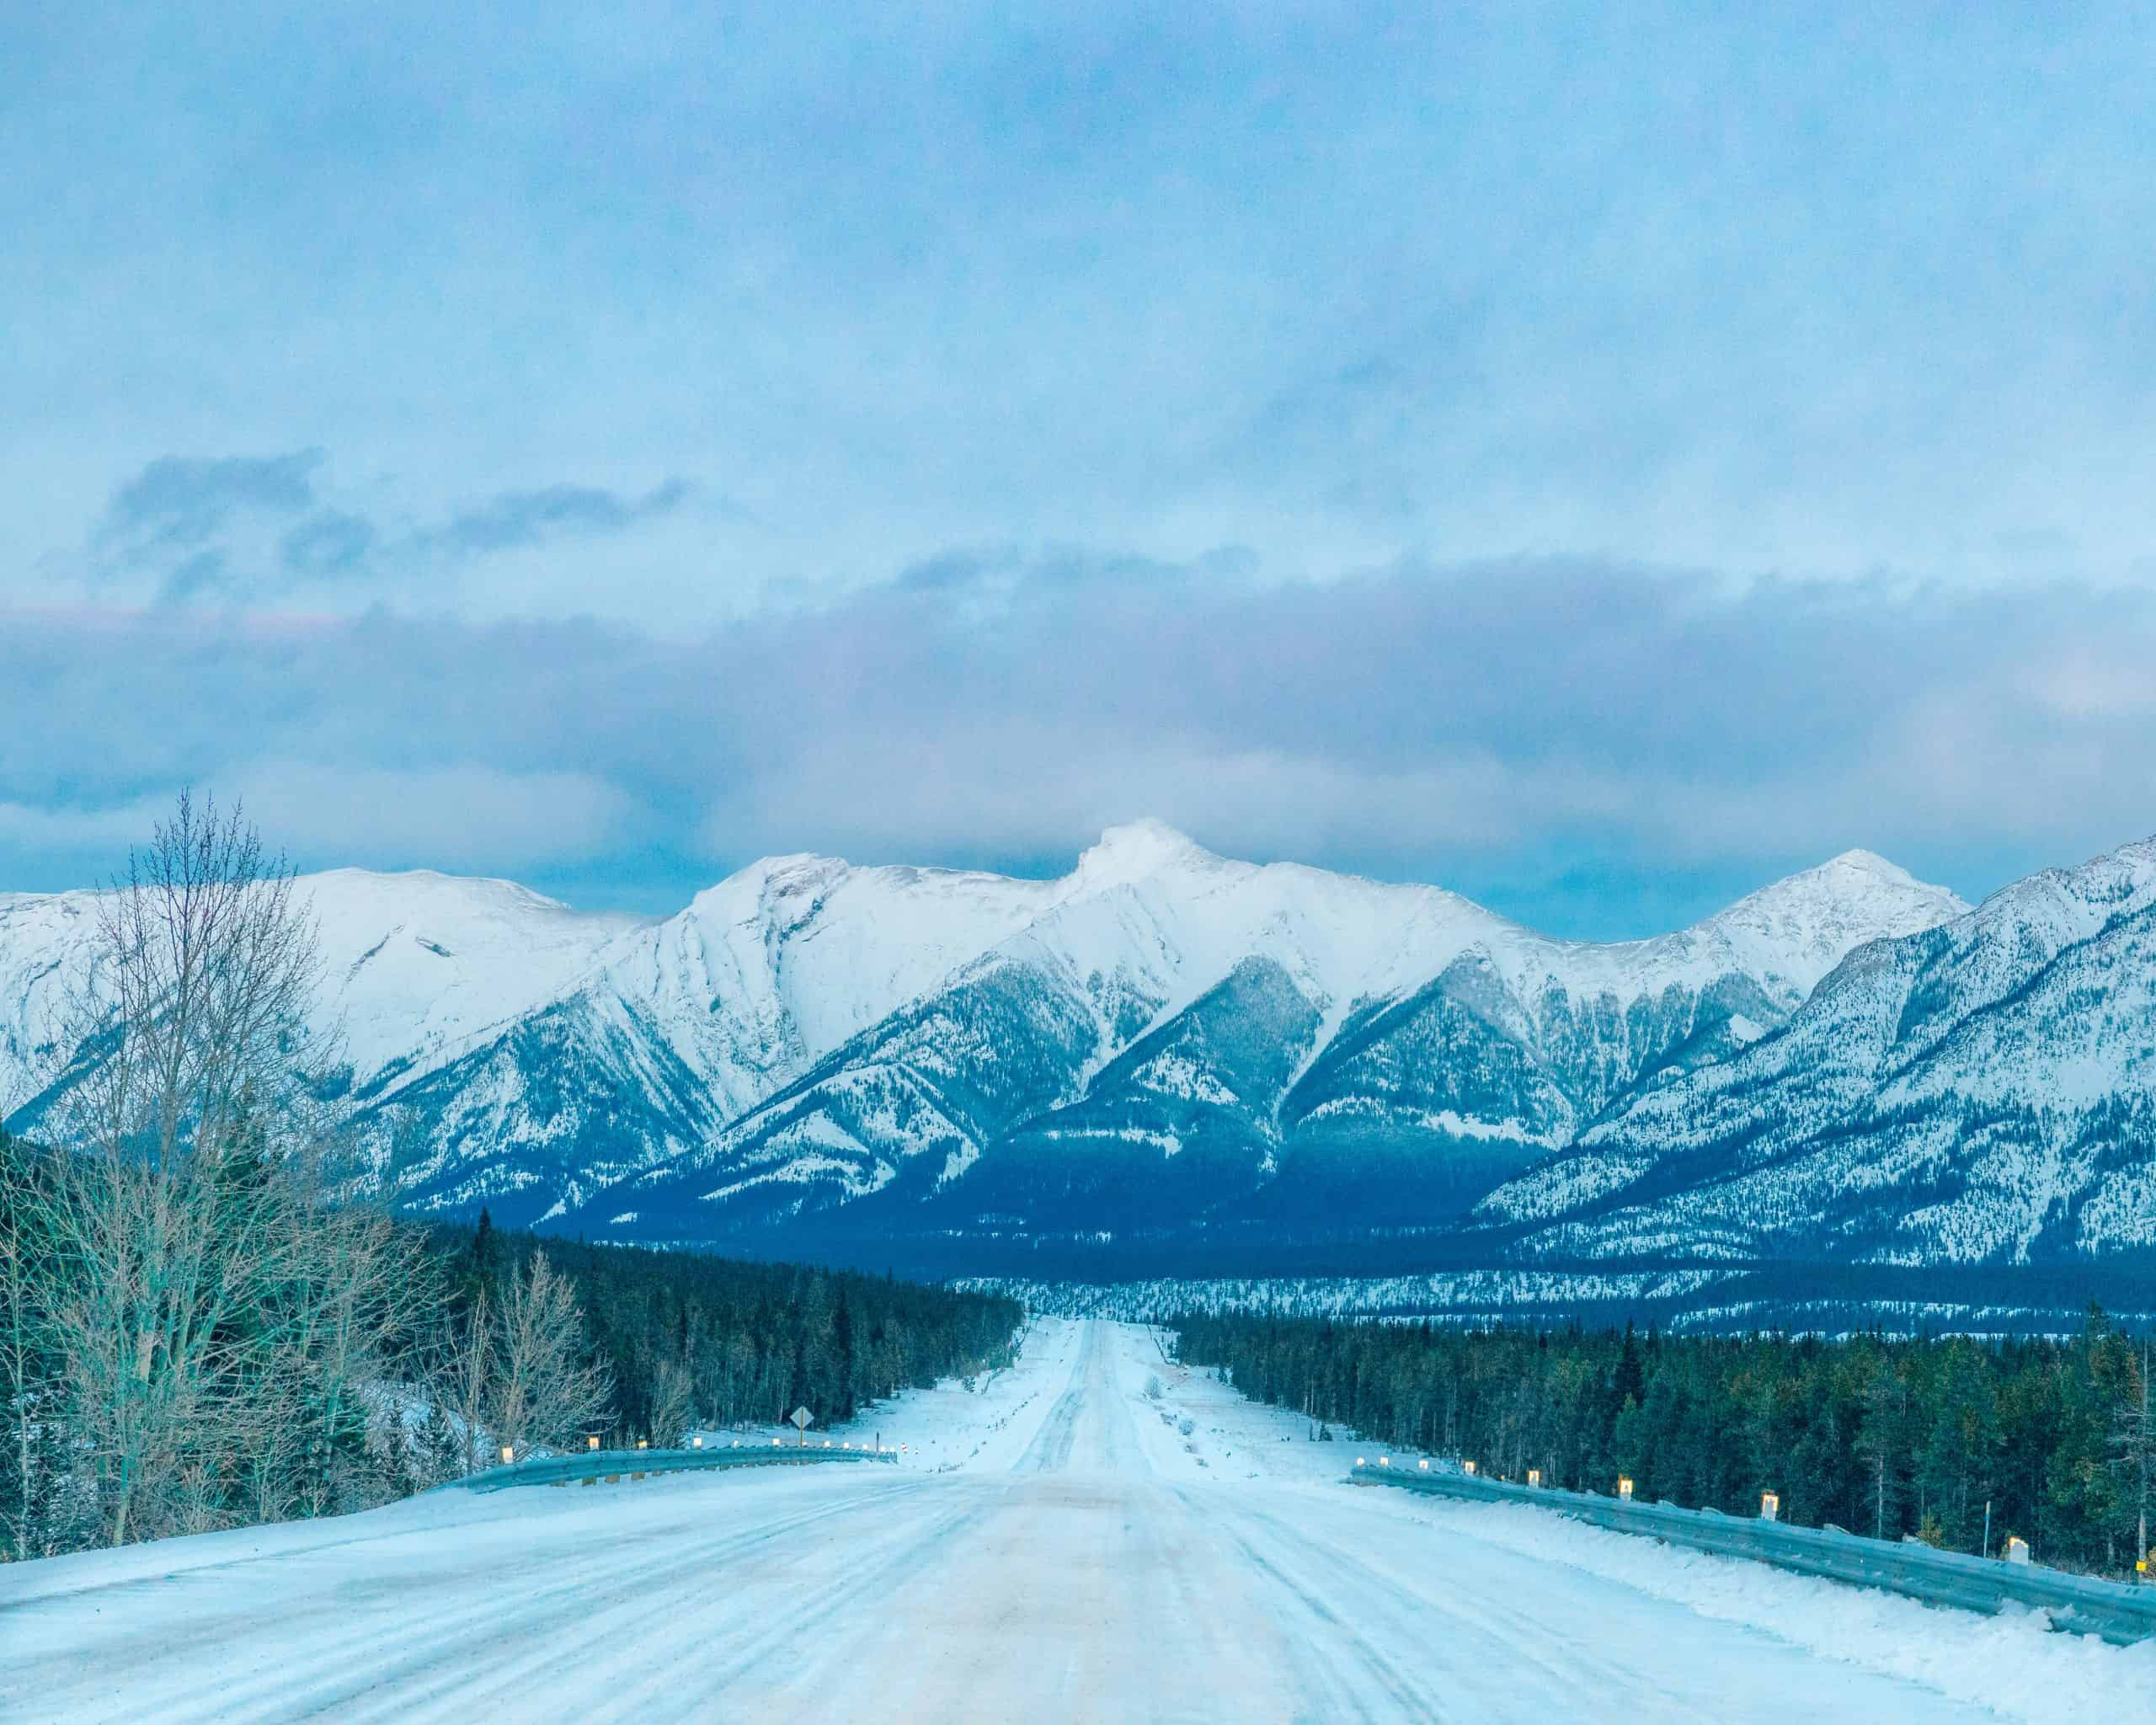 Snow Covered Icefields Parkway in with Mountain View in Winter